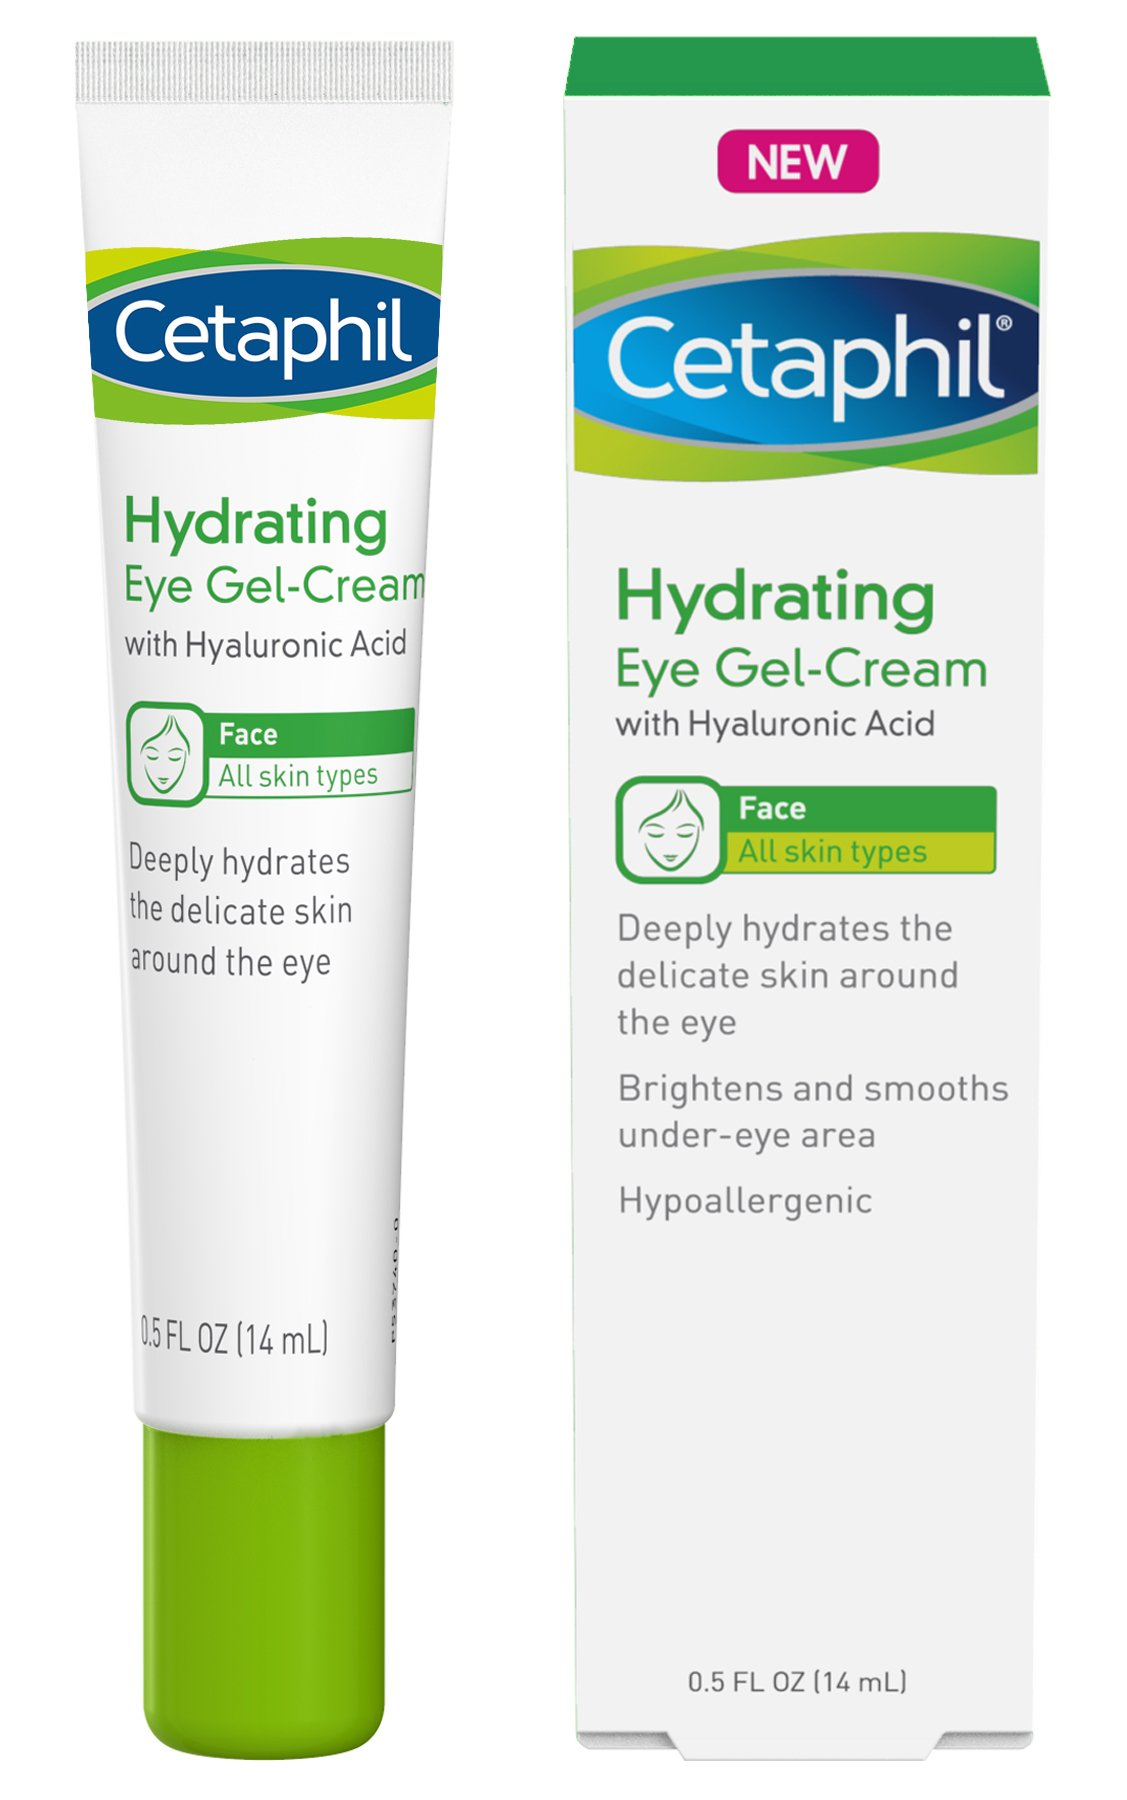 Cetaphil Hydrating Eye Gel-Cream With Hyaluronic Acid - Designed to Deeply Hydrate, Brighten & Smooth Under-Eye Area - For All Skin Types - Hypoallergenic & Suitable for Sensitive Skin - 0.5 Fl. Oz by Cetaphil